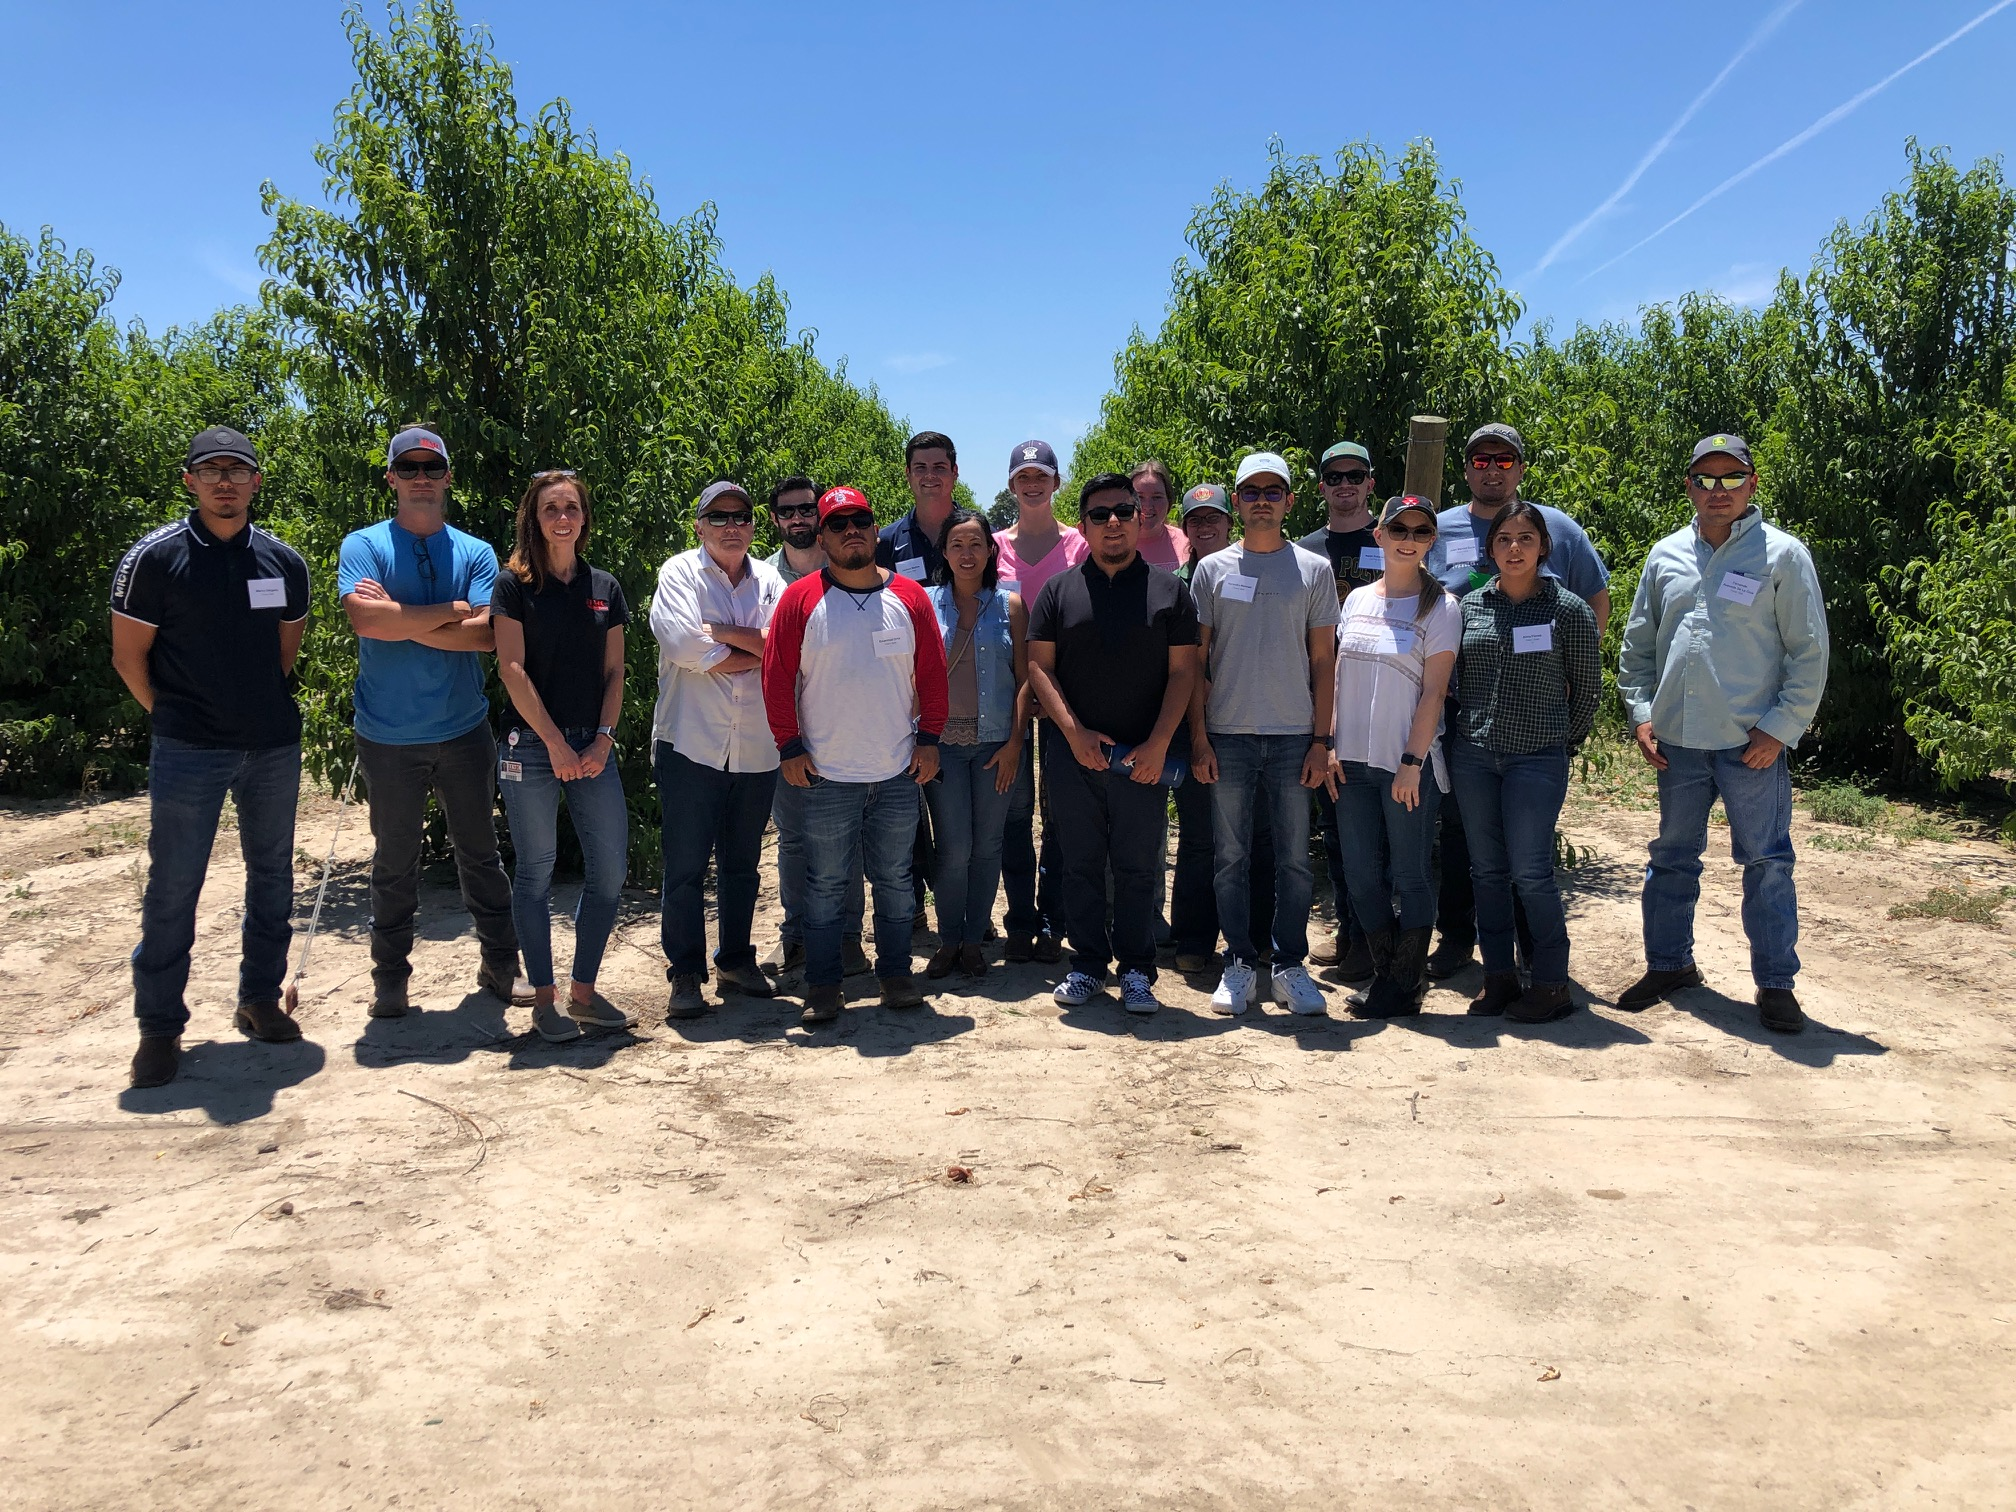 Western Growers Careers in Ag students visit HMC Farms